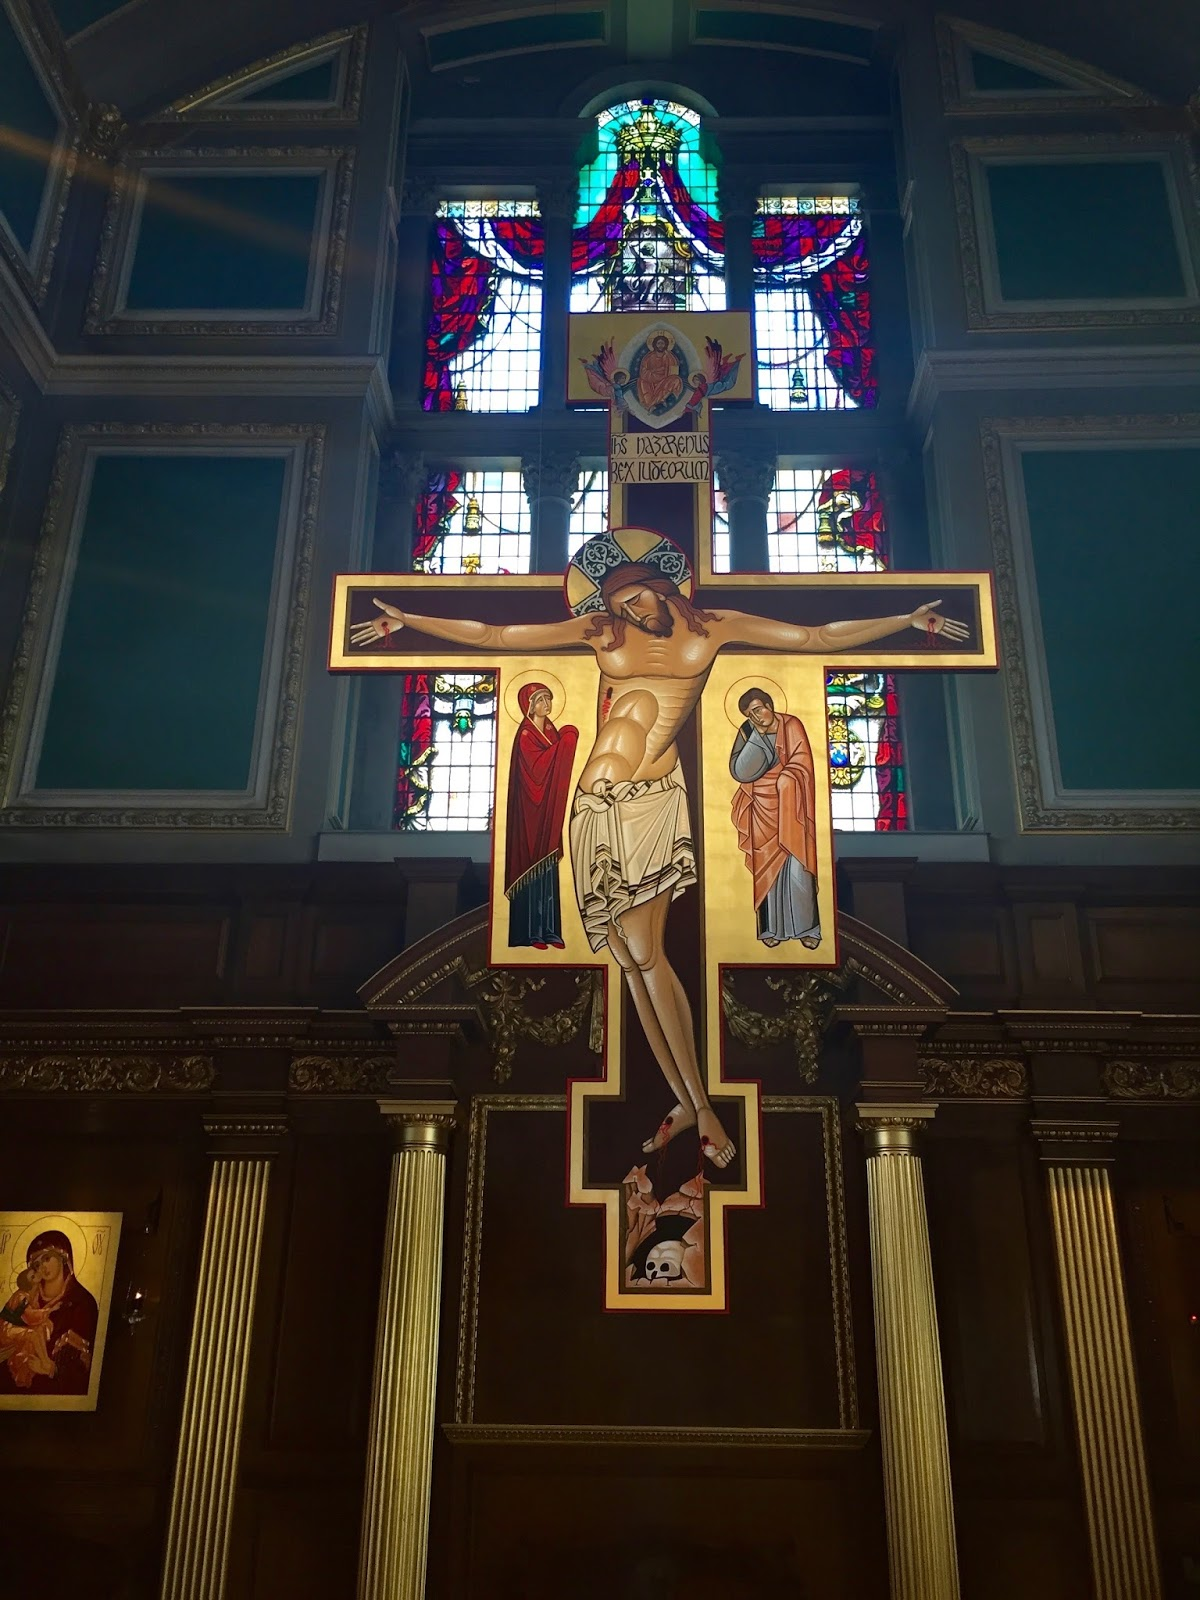 Jesus on the cross in a London church